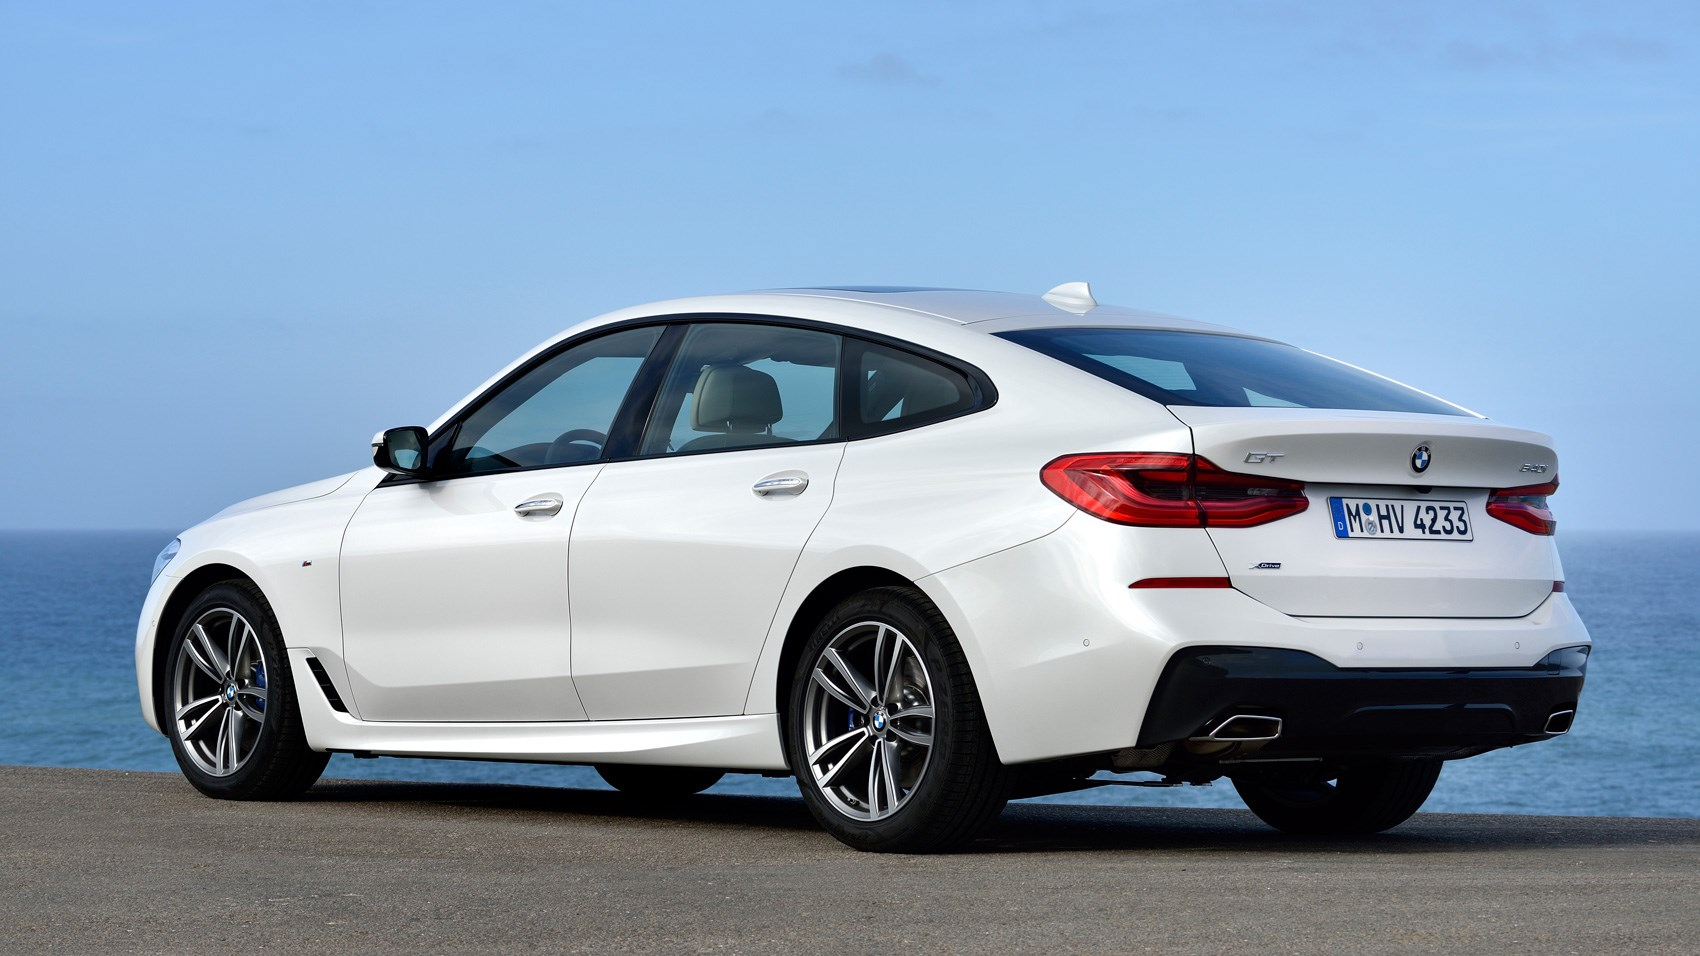 BMW 6 GT Rear Quarter